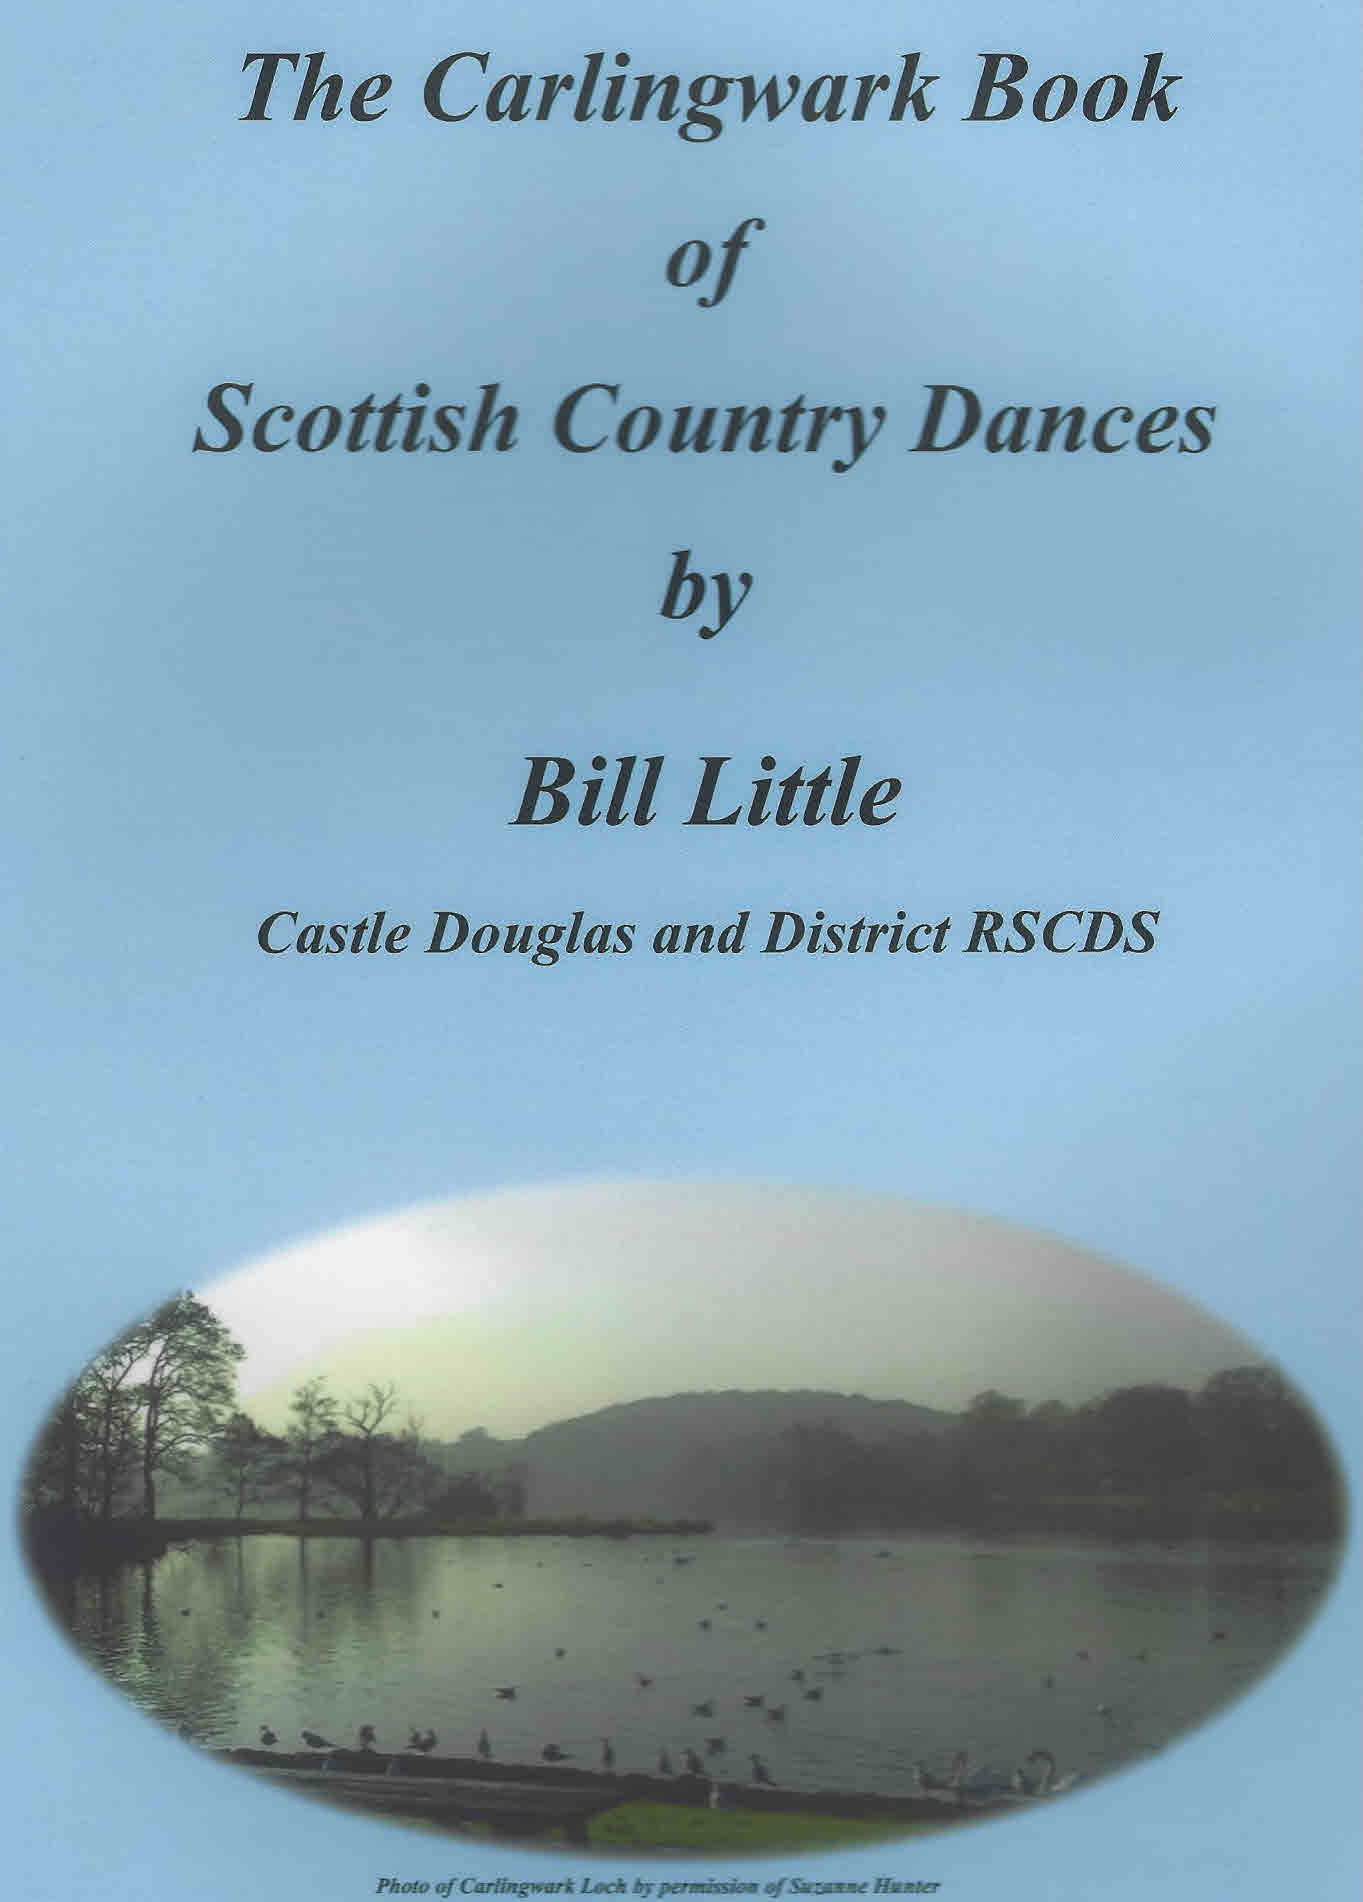 The Carlingwark Book of Scottish Country Dances By Bill Little